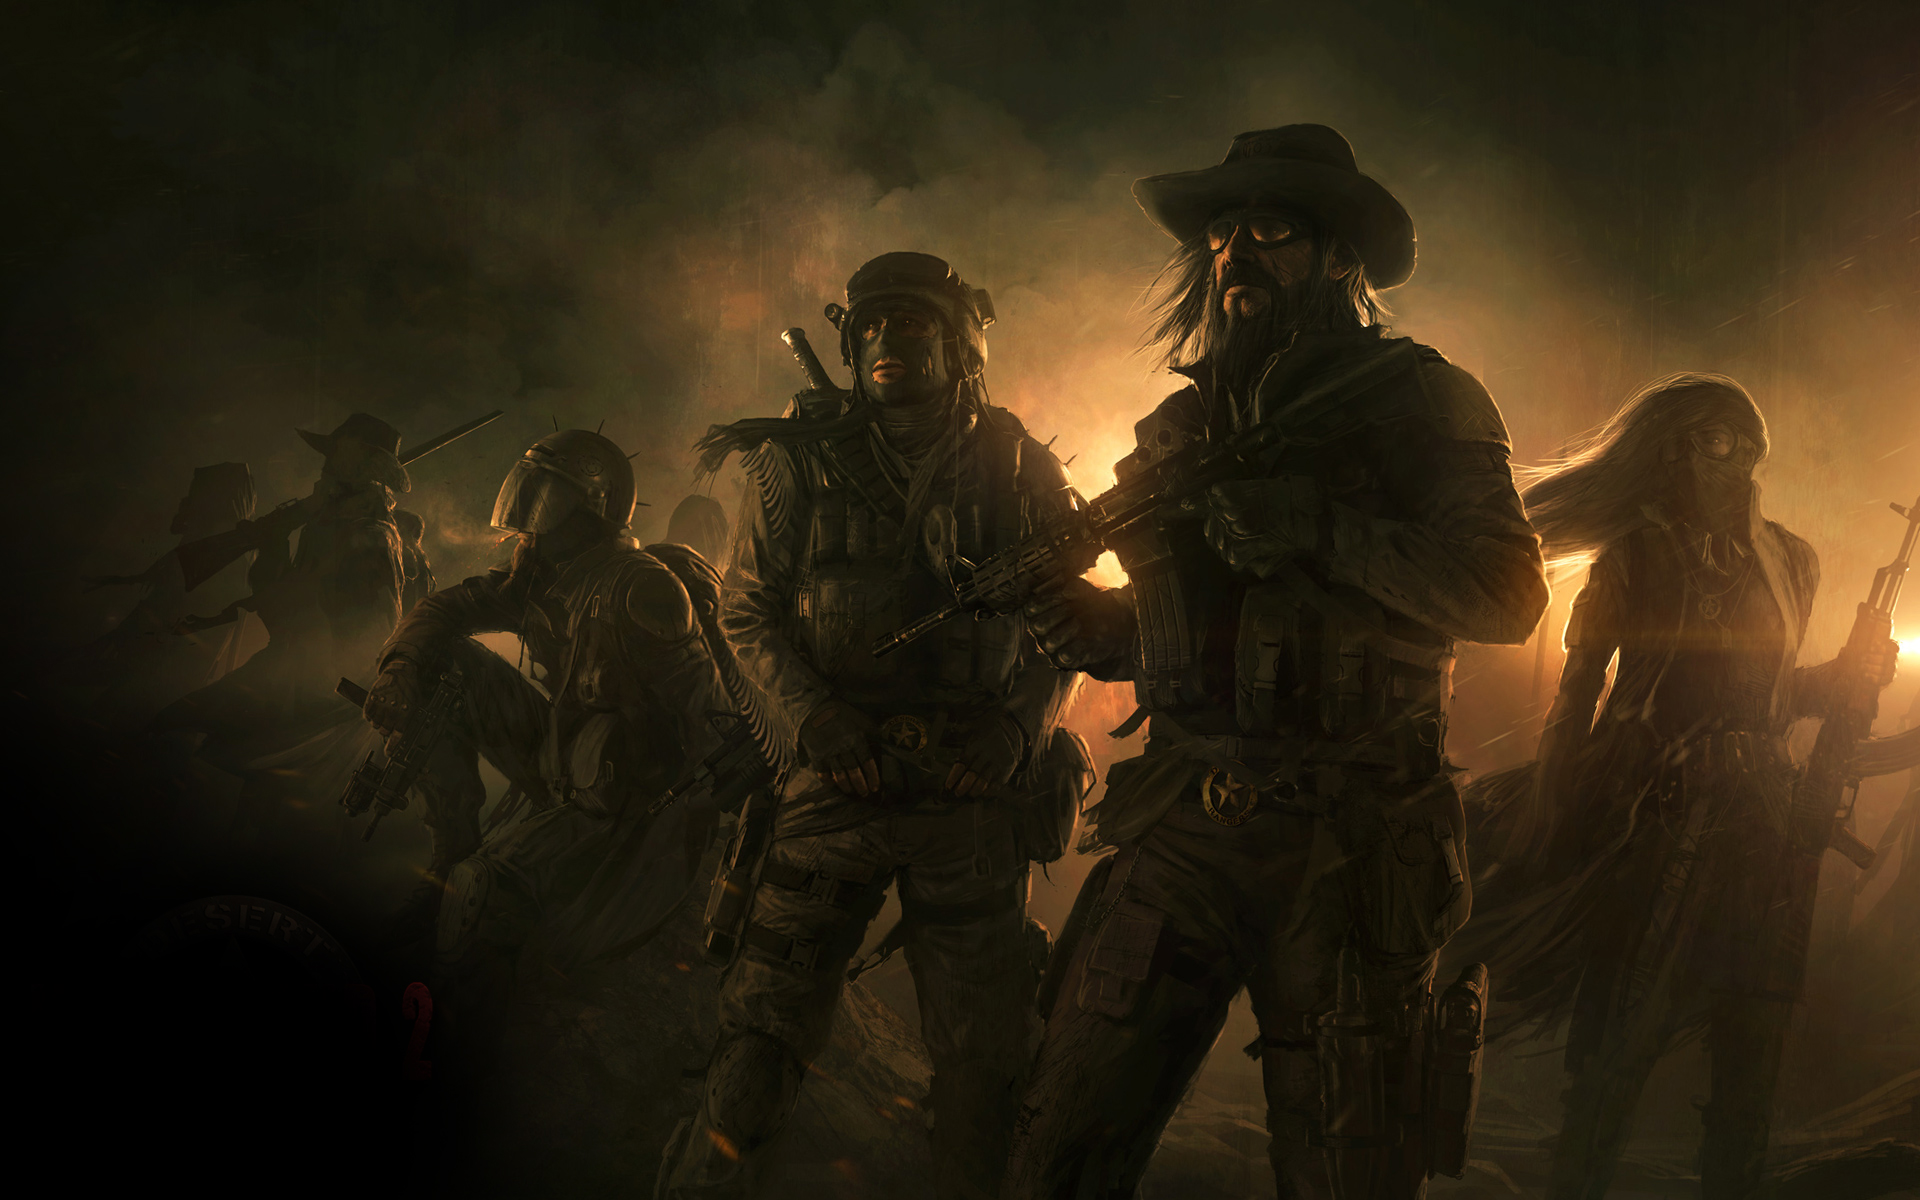 Wasteland 2 will get a launch date by the end of the month, studio says